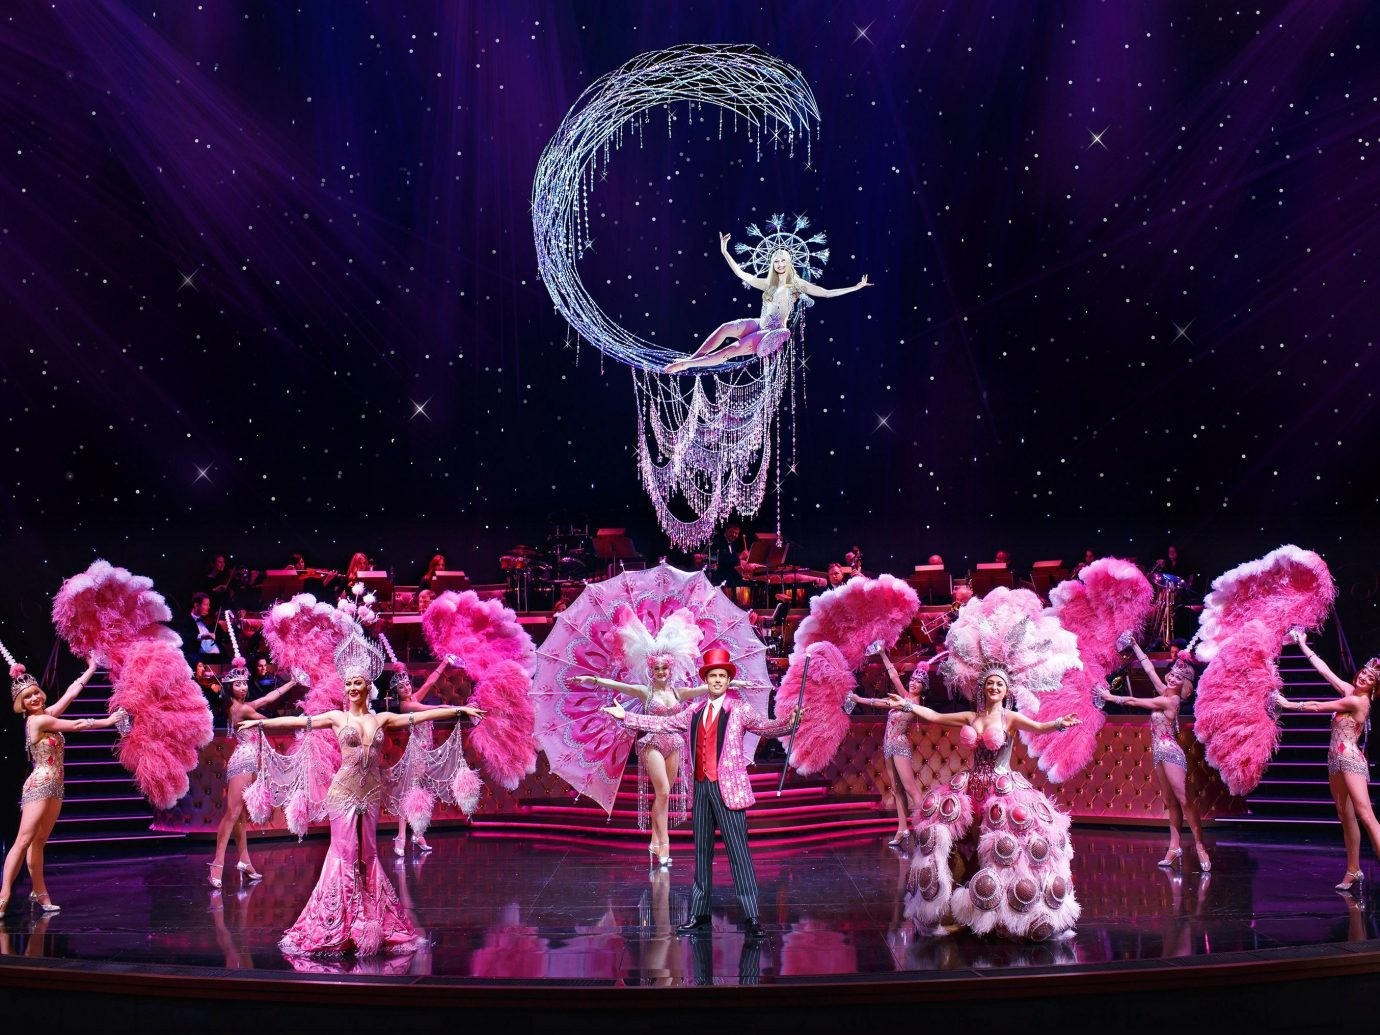 Trip Ideas performance indoor performing arts performance art Entertainment musical theatre stage event colorful